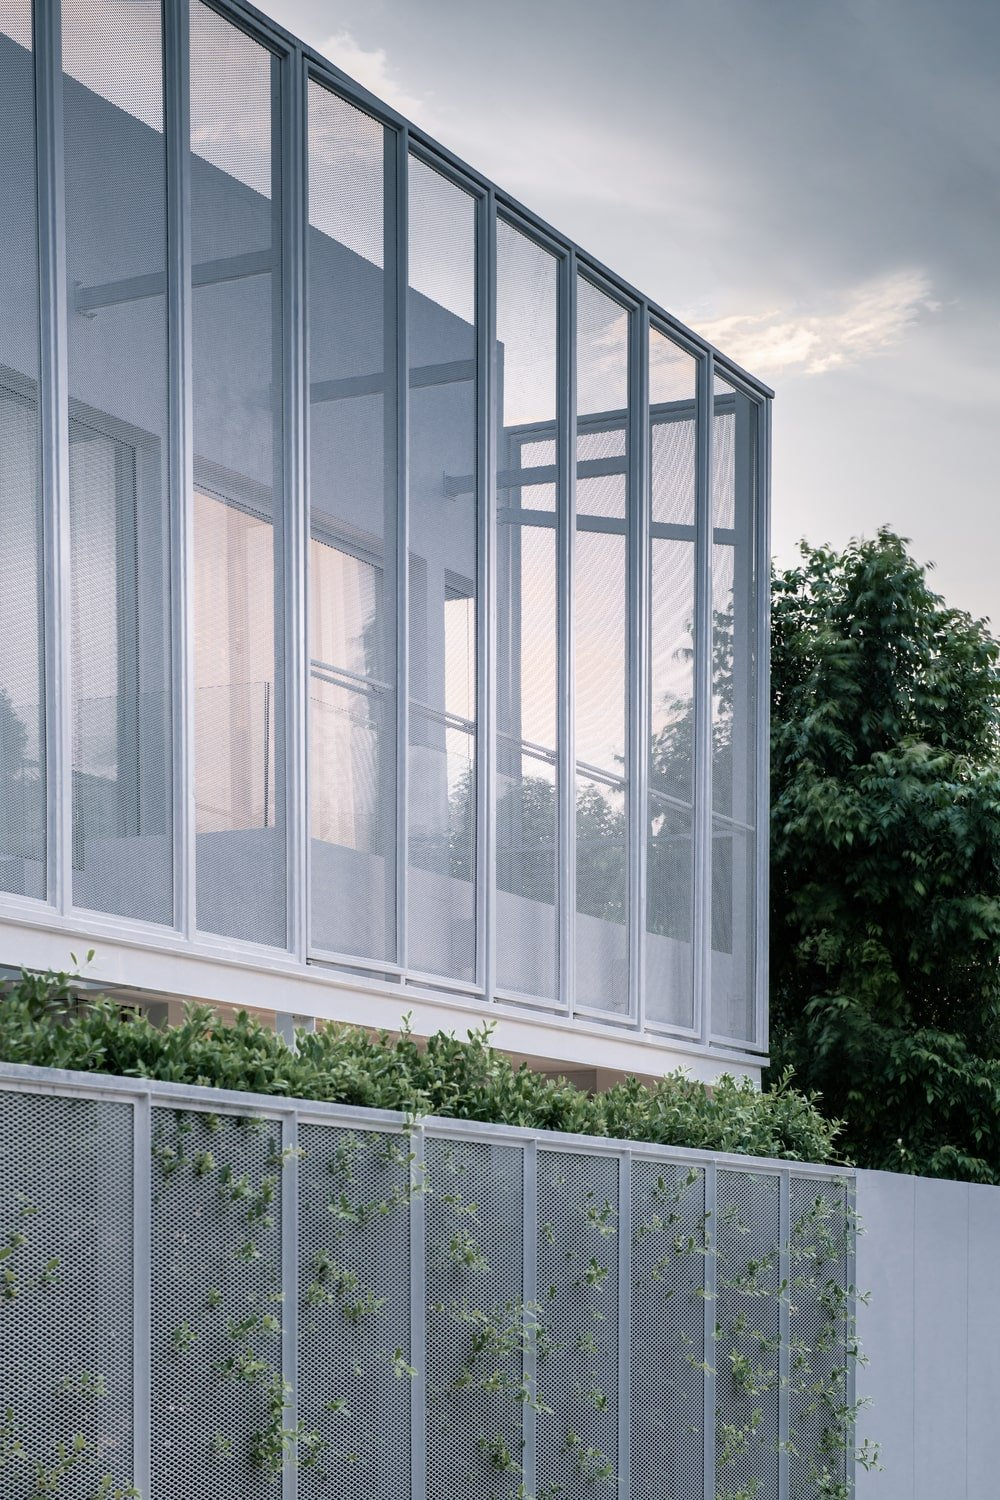 You can also see through the panels that the main structure inside has a large glass wall.